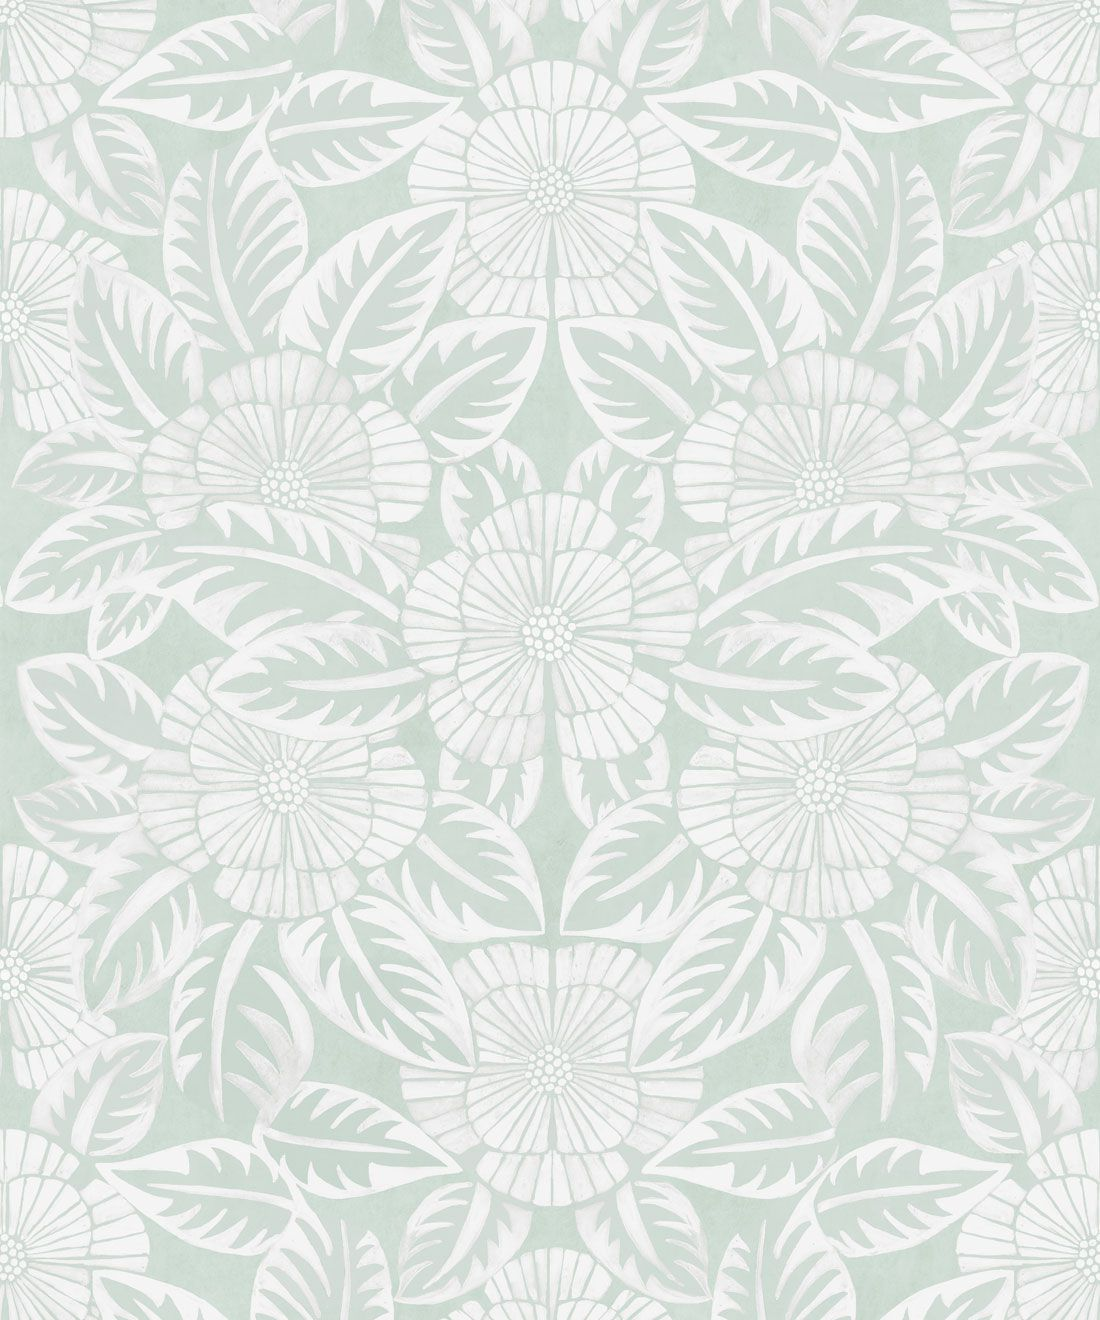 Calcutta Wallpaper • Flower and Leaf Motif Design • Ethnic Wallpaper • Aqua Wallpaper • Swatch